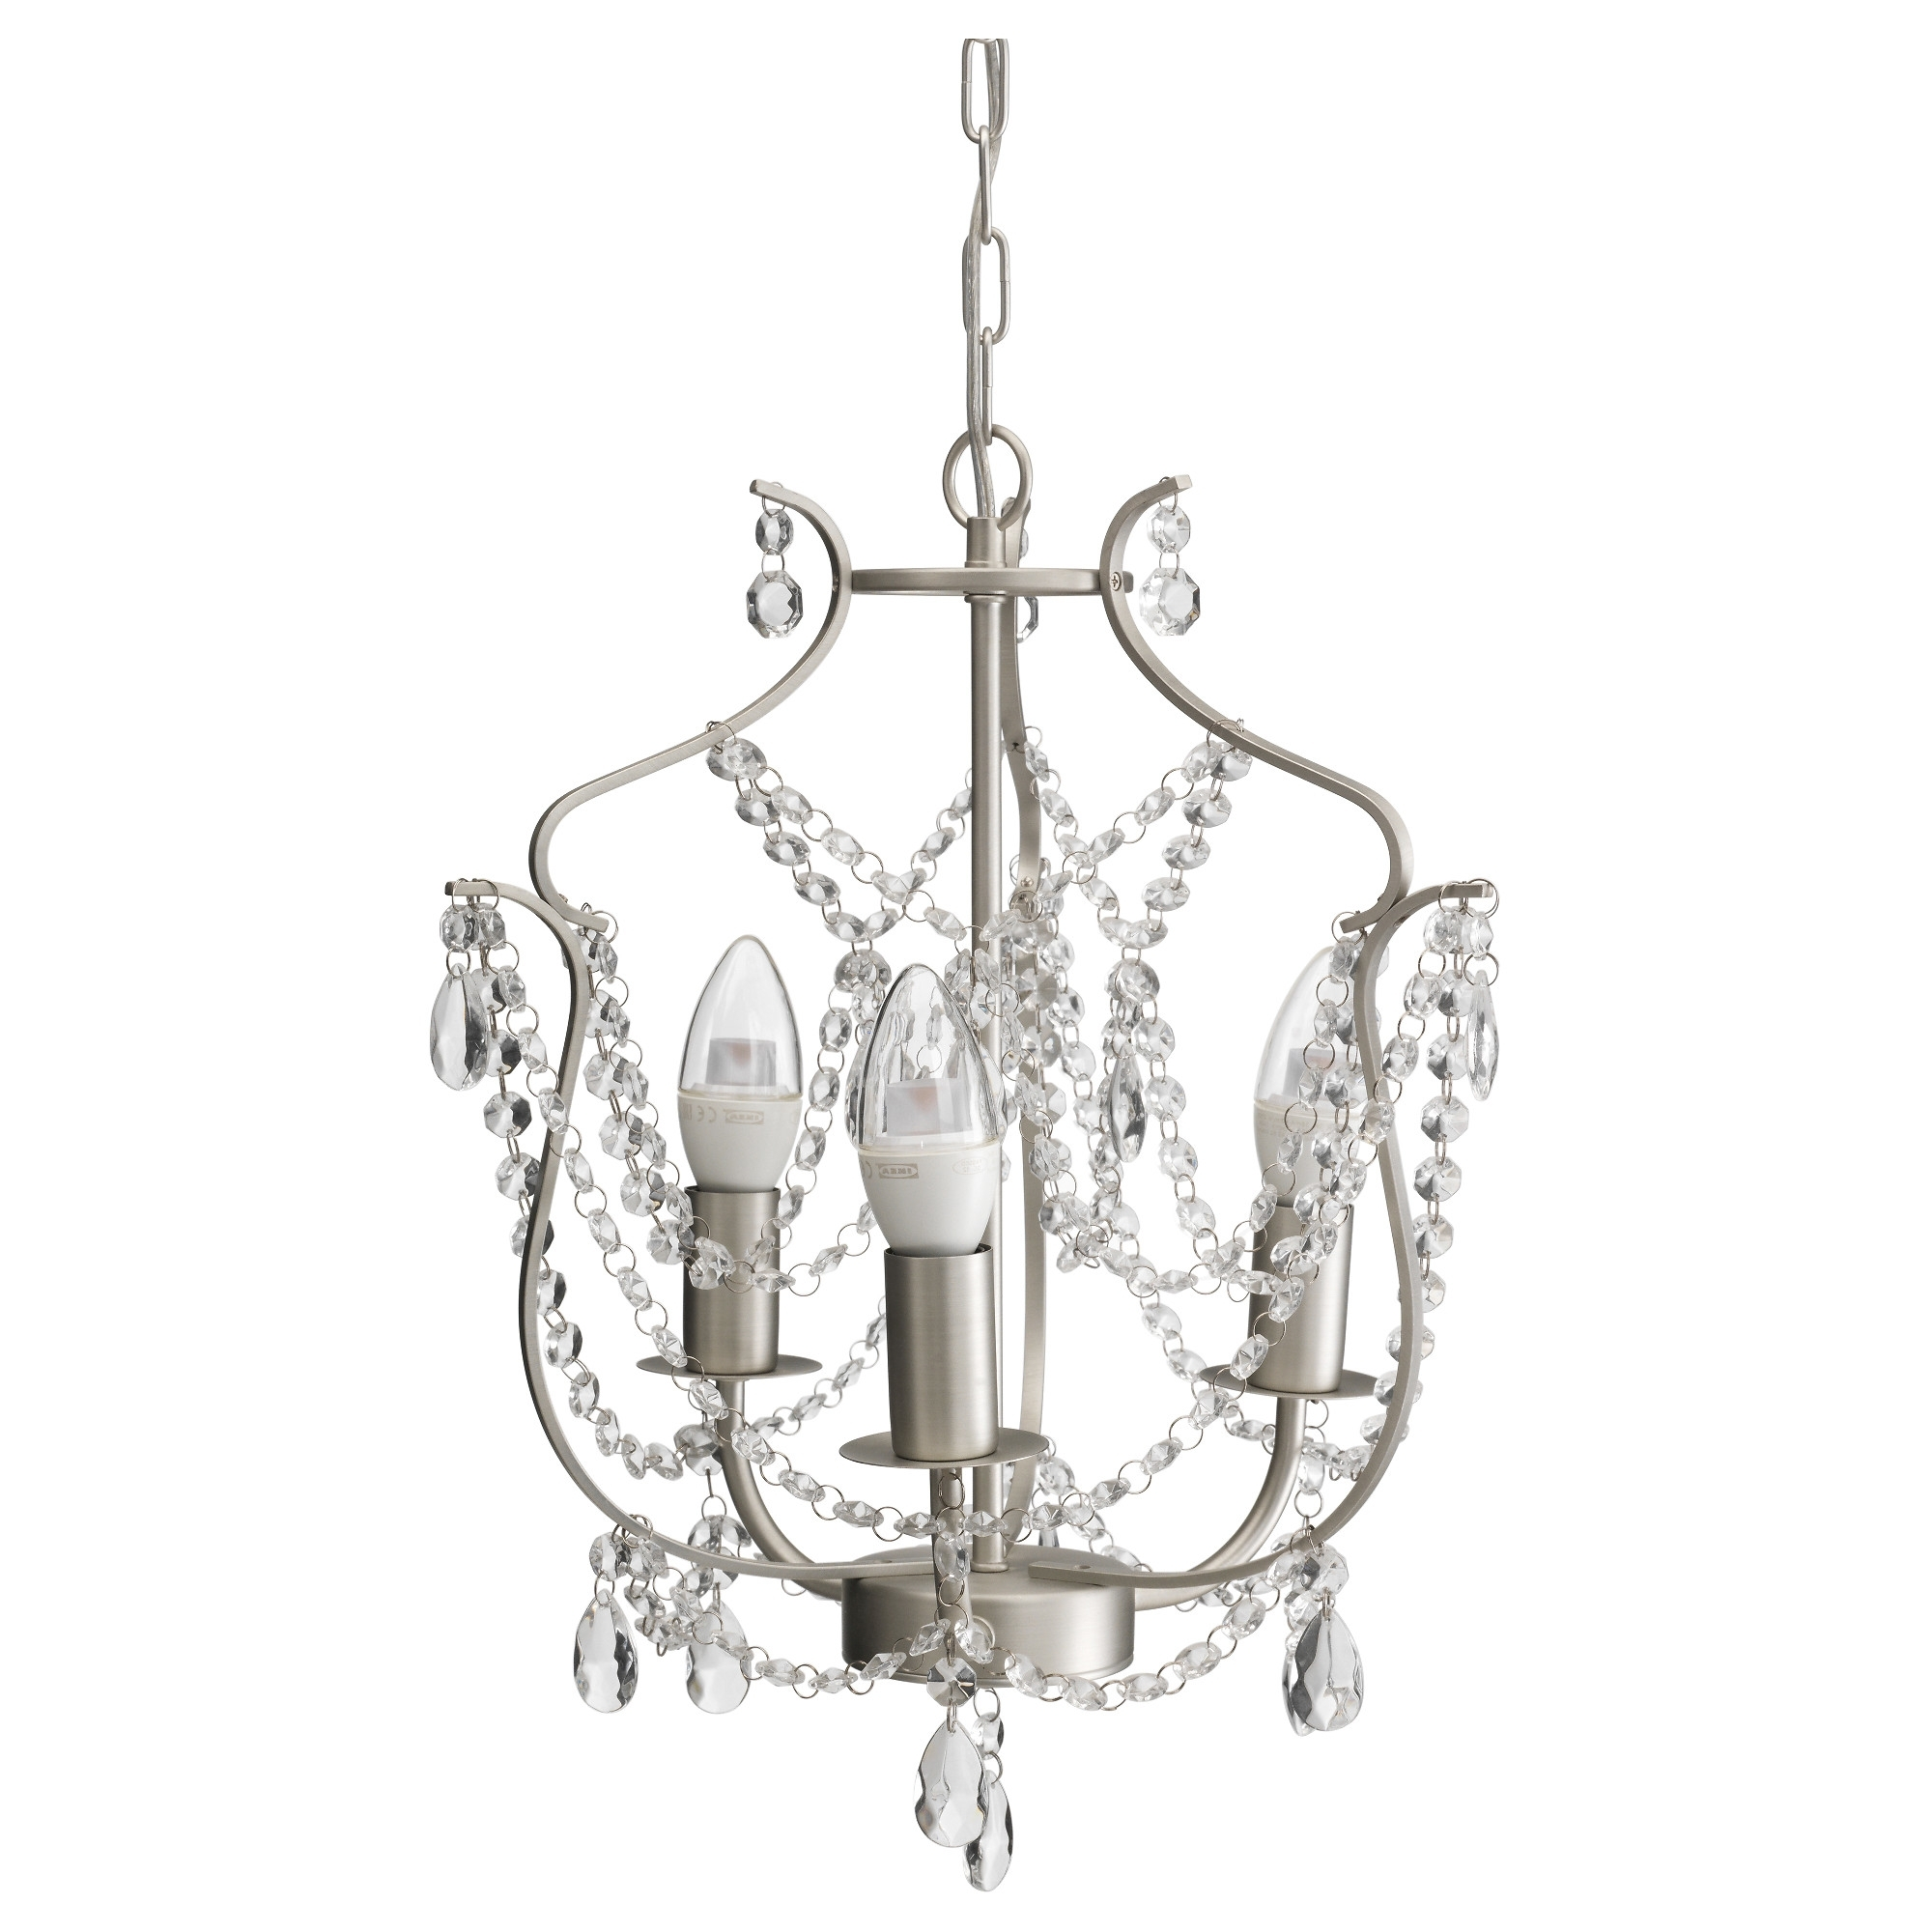 Most Popular Light : Mini Led Chandelier Kristaller Armed Ikea Dining Small With Trendy Chandeliers (View 10 of 20)